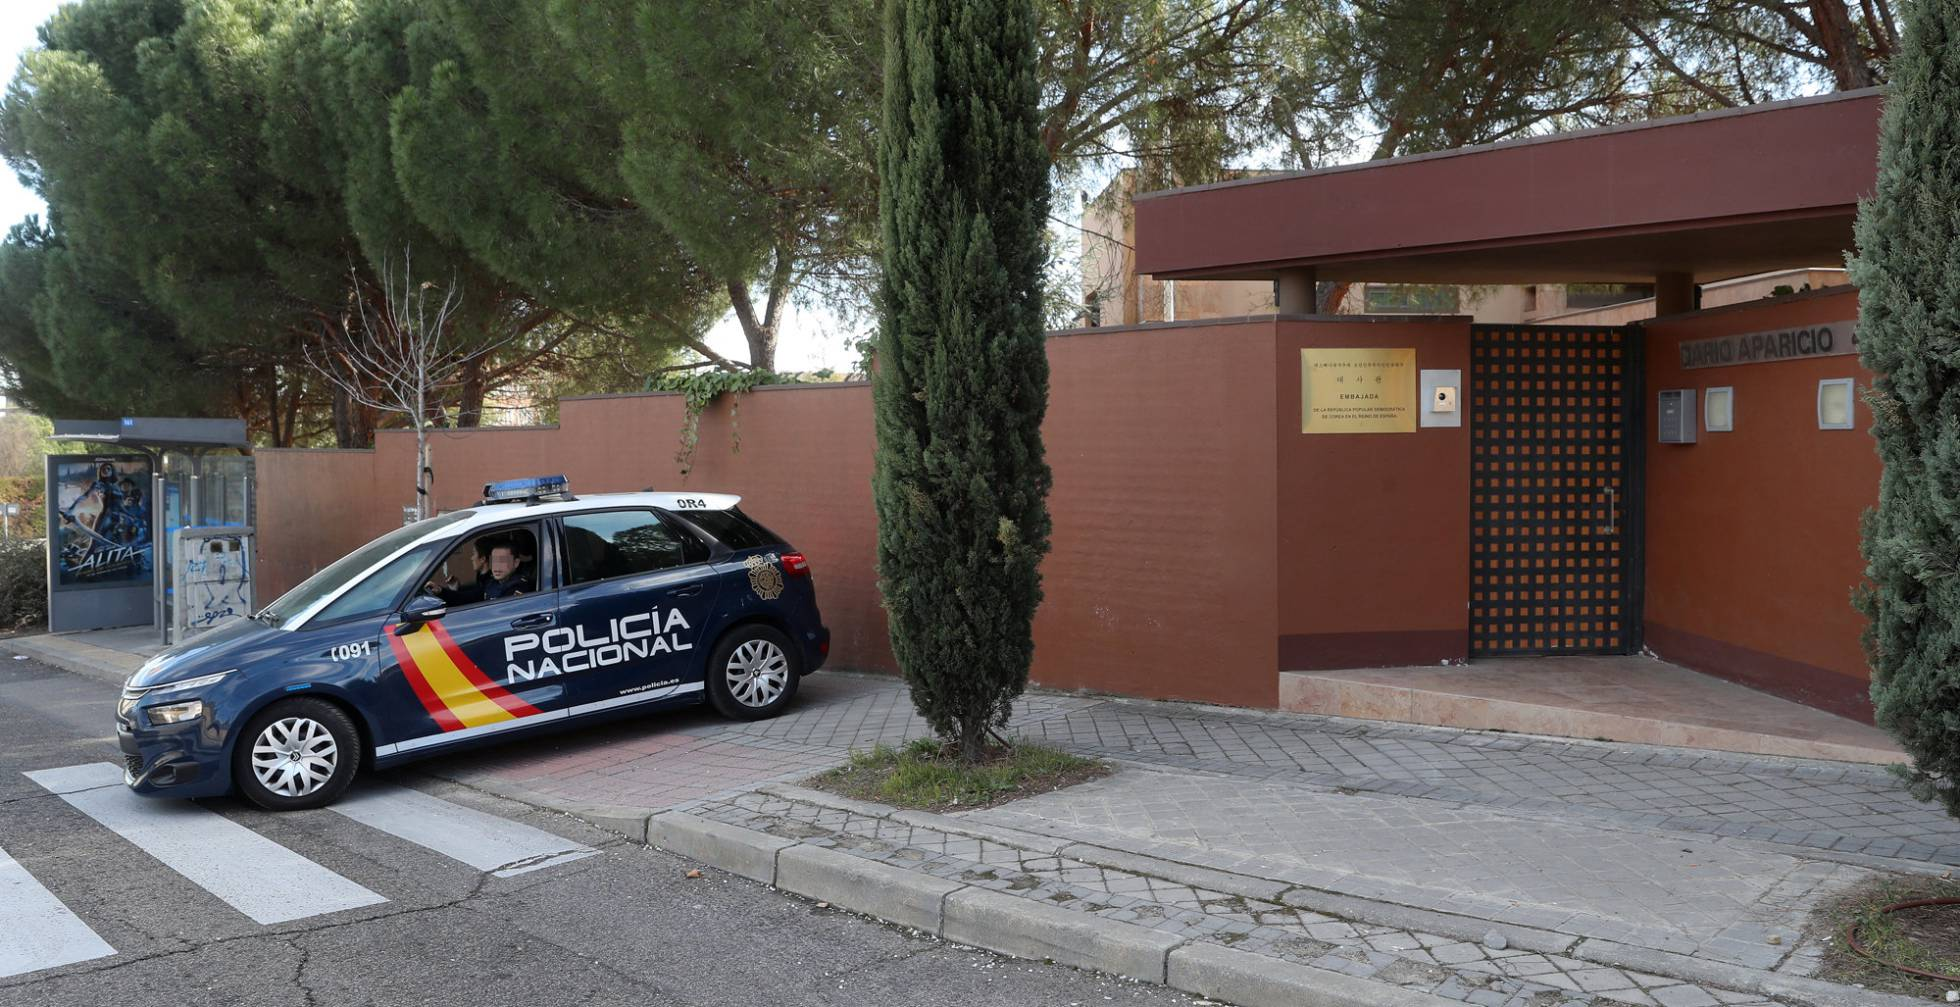 REPORT: CIA implicated in attack on North Korean embassy in Madrid